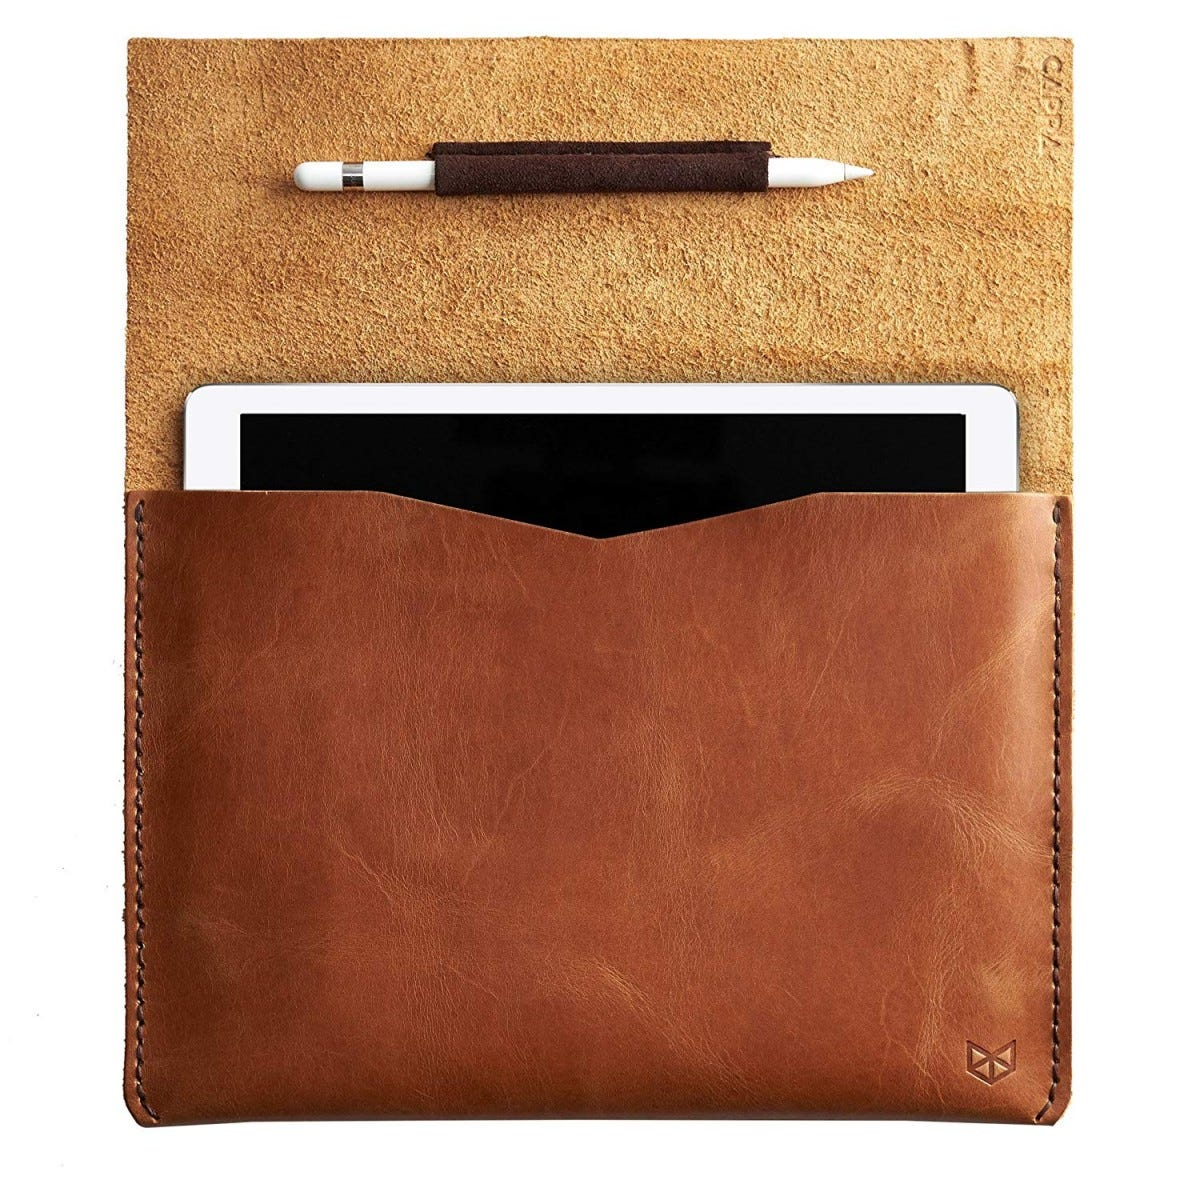 leather, ipad, ipad case, premium, sleeve, capra, capra leather